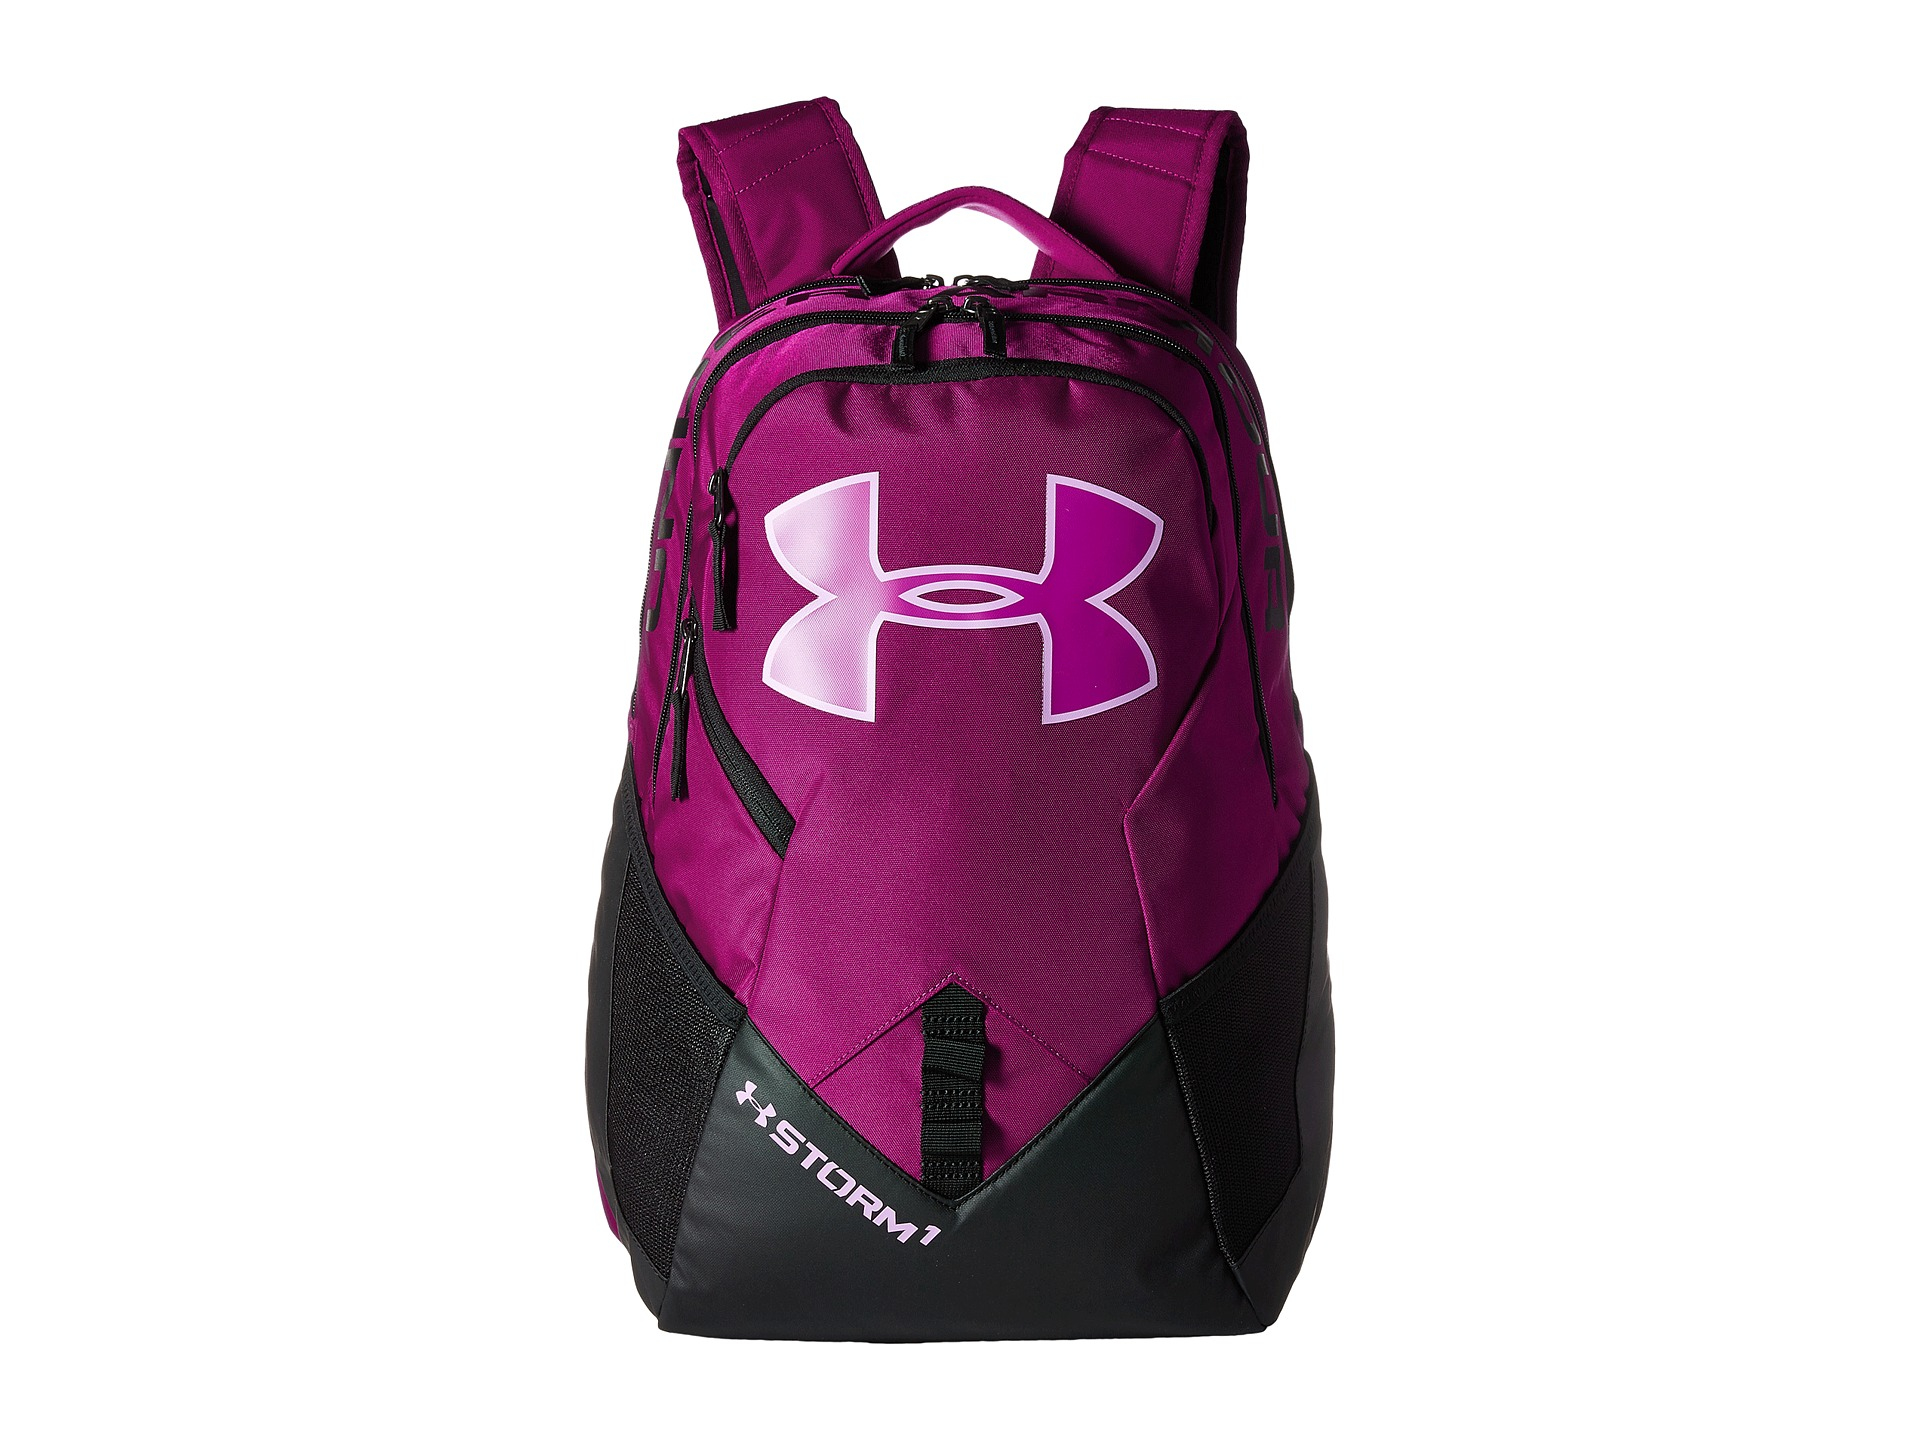 a7ceb73ab8f7 Lyst - Under Armour Ua Big Logo Iv Backpack in Purple for Men